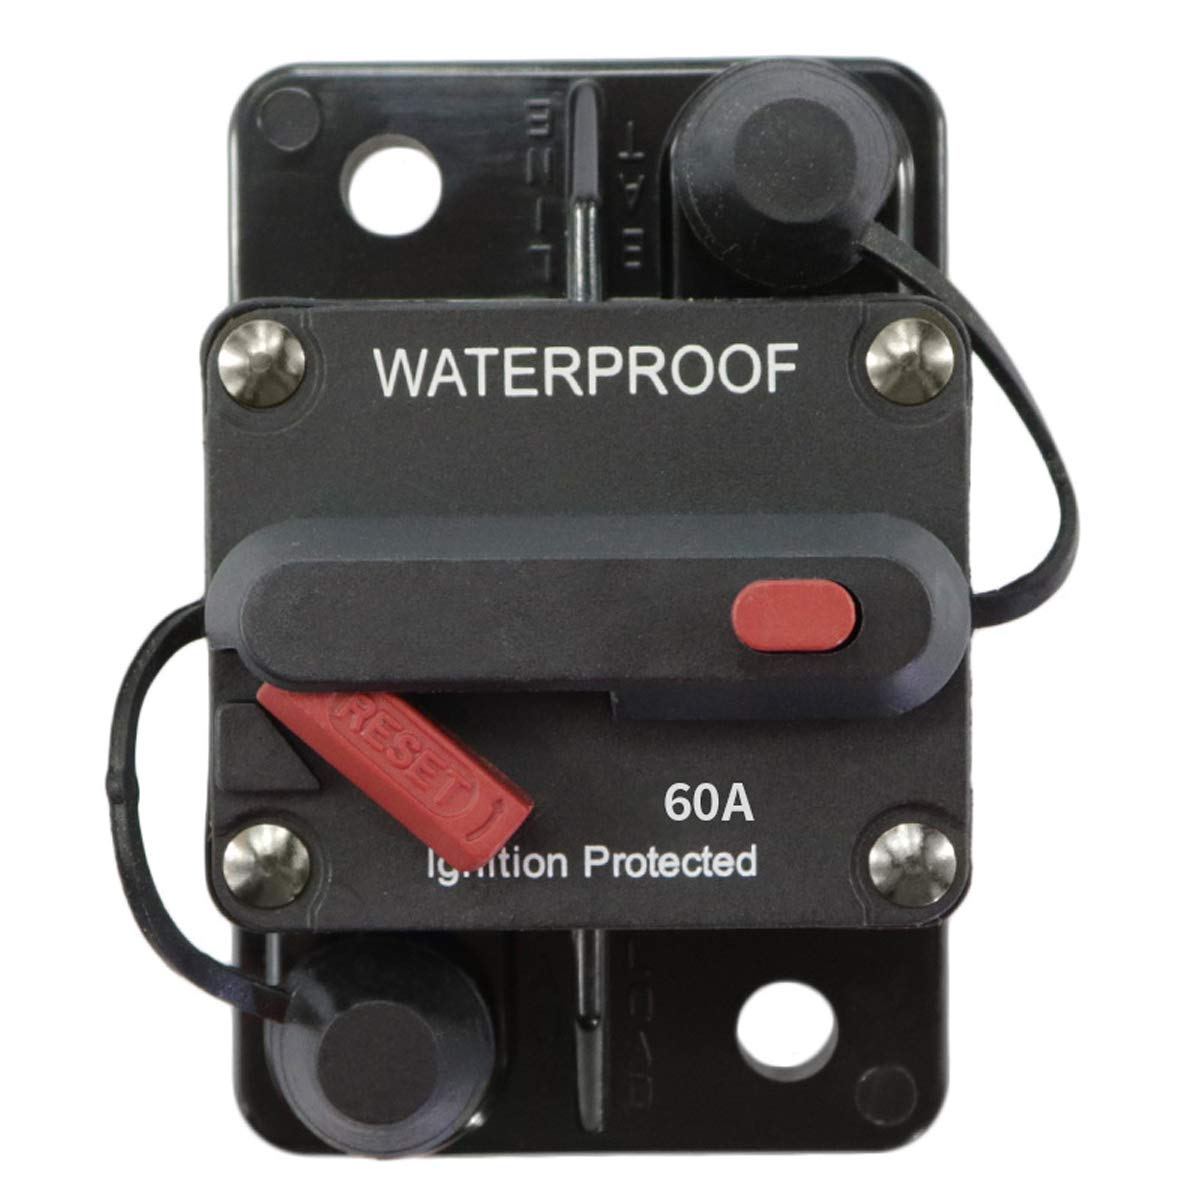 AUKA 60 Amp Circuit Breaker with Manual Reset High Amp Switchable,Surface-Mount,12V- 48VDC, Waterproof for Trucks Bus Rv Suv Marine (60A)